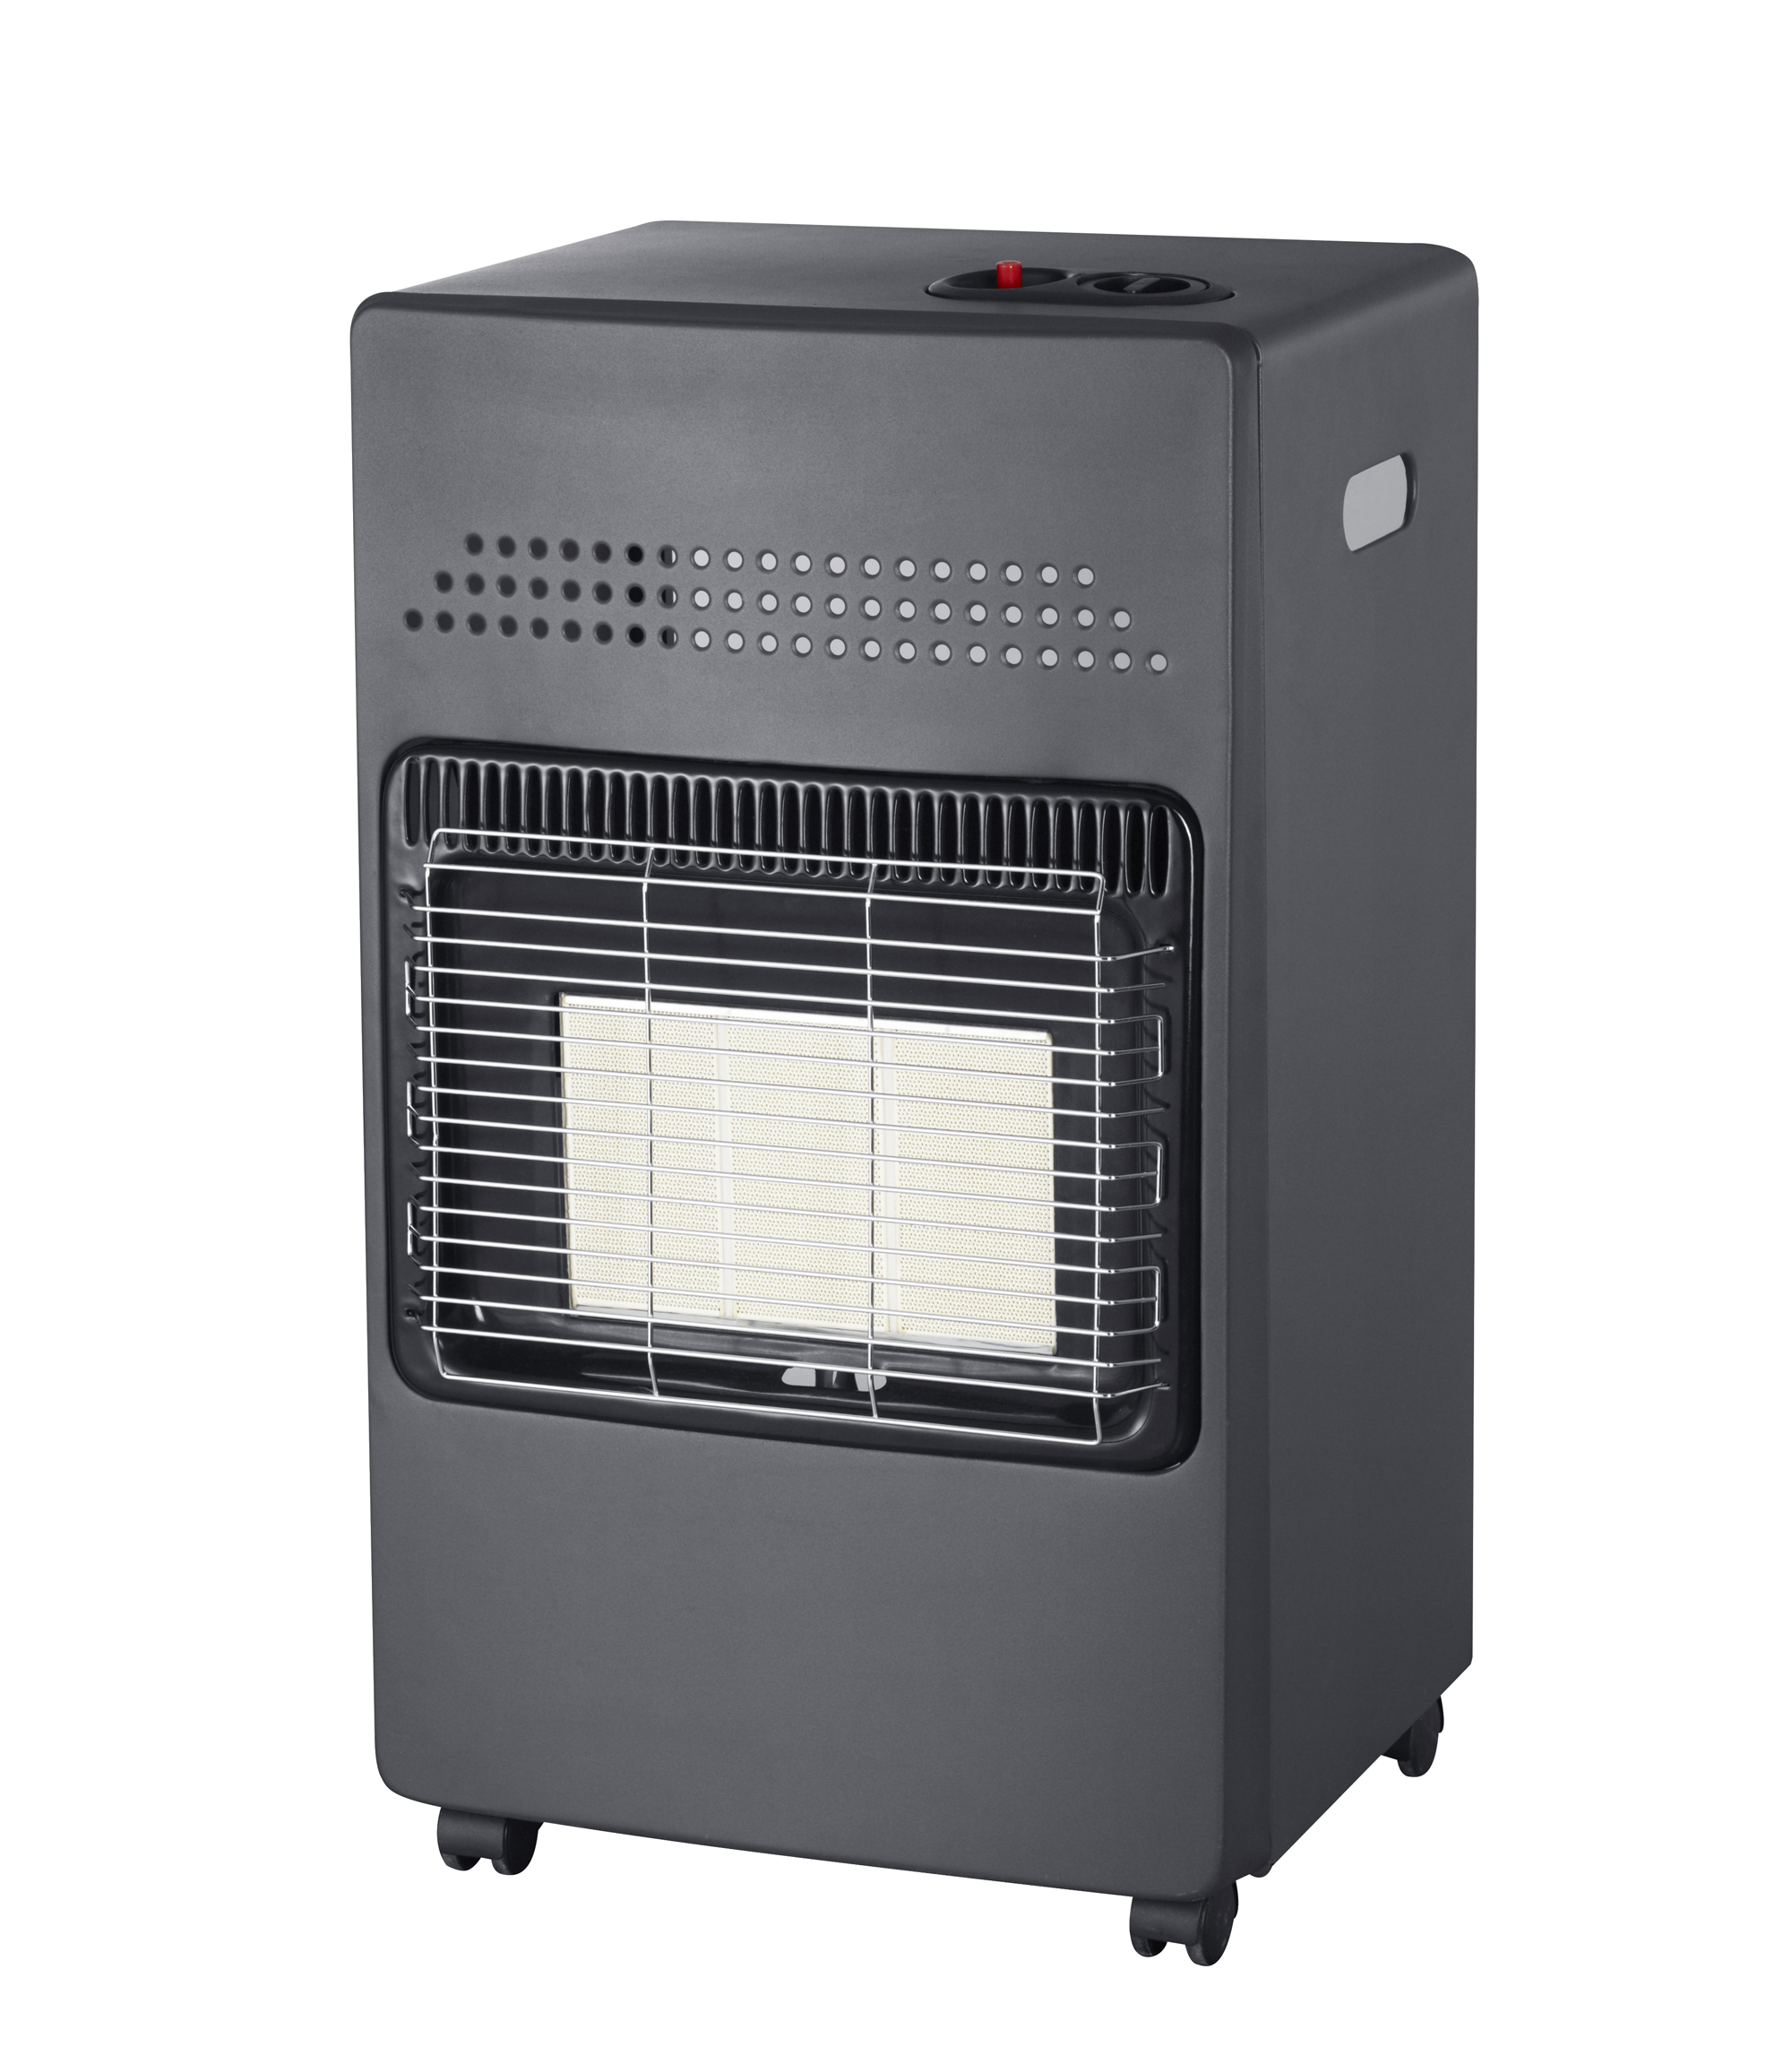 China Manufacturer Natural Gas Room Heaters Rinnai Gas Heater Buy Natural Gas Room Heaters Rinnai Gas Heater Product On Alibaba Com